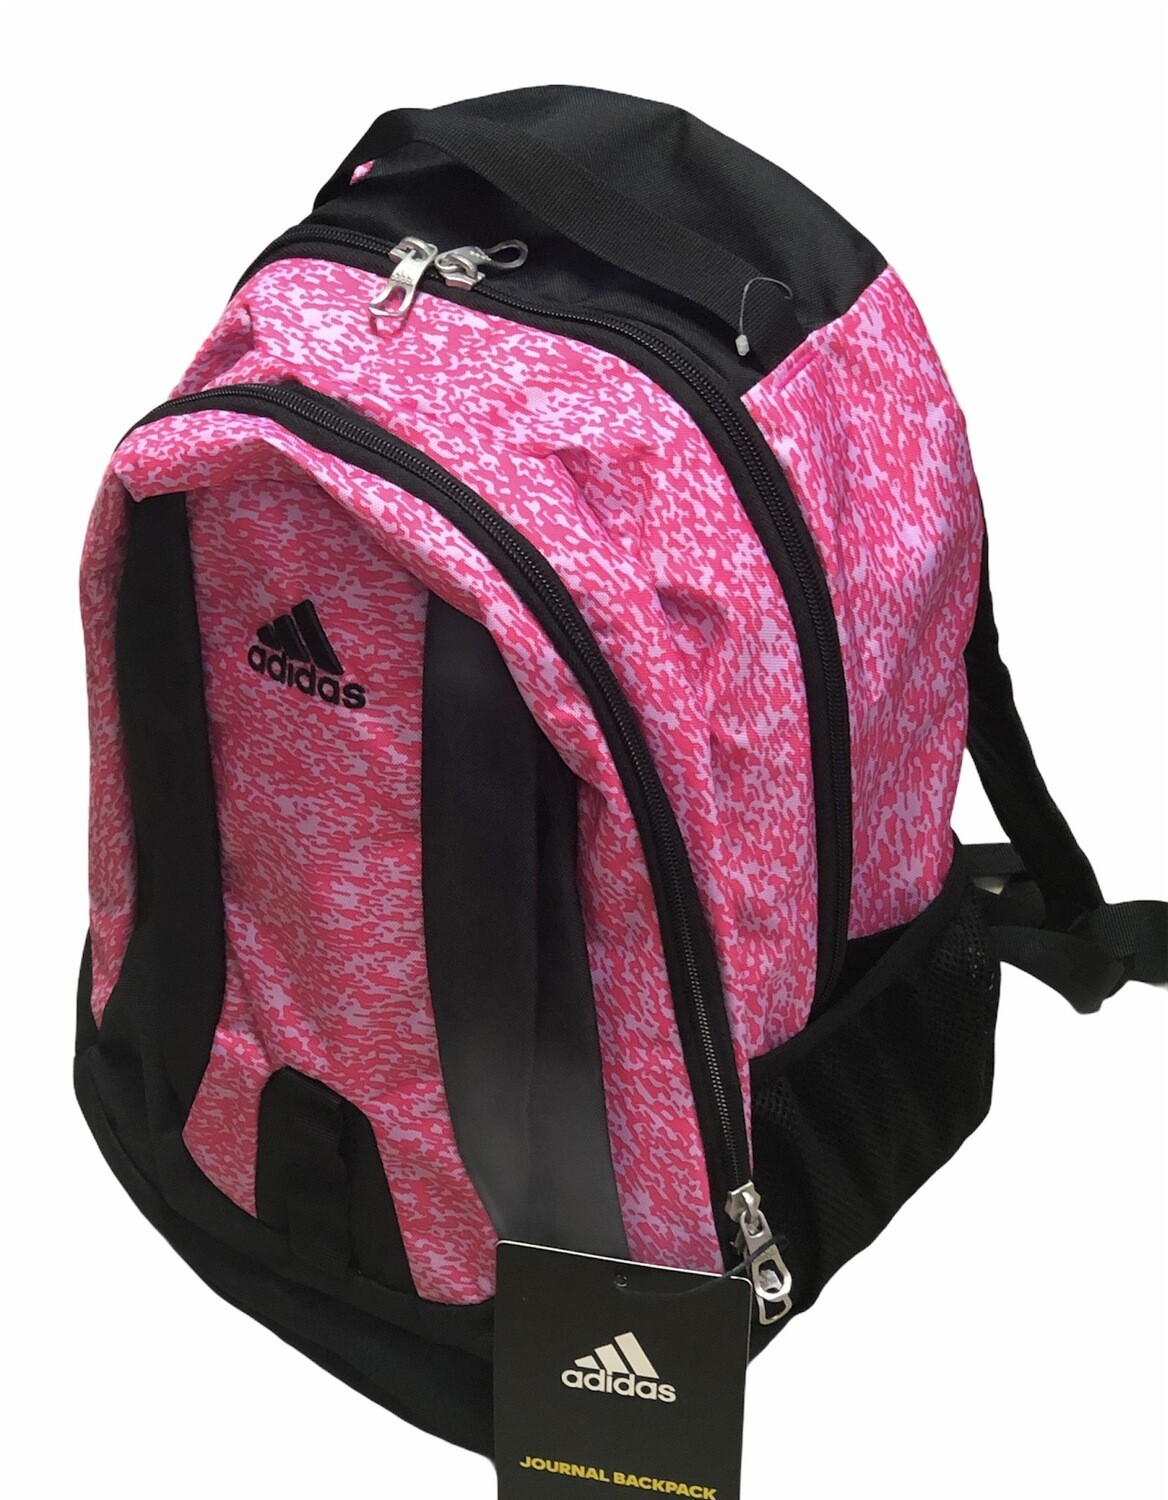 New ADIDAS Shock Pink Journal Backpack